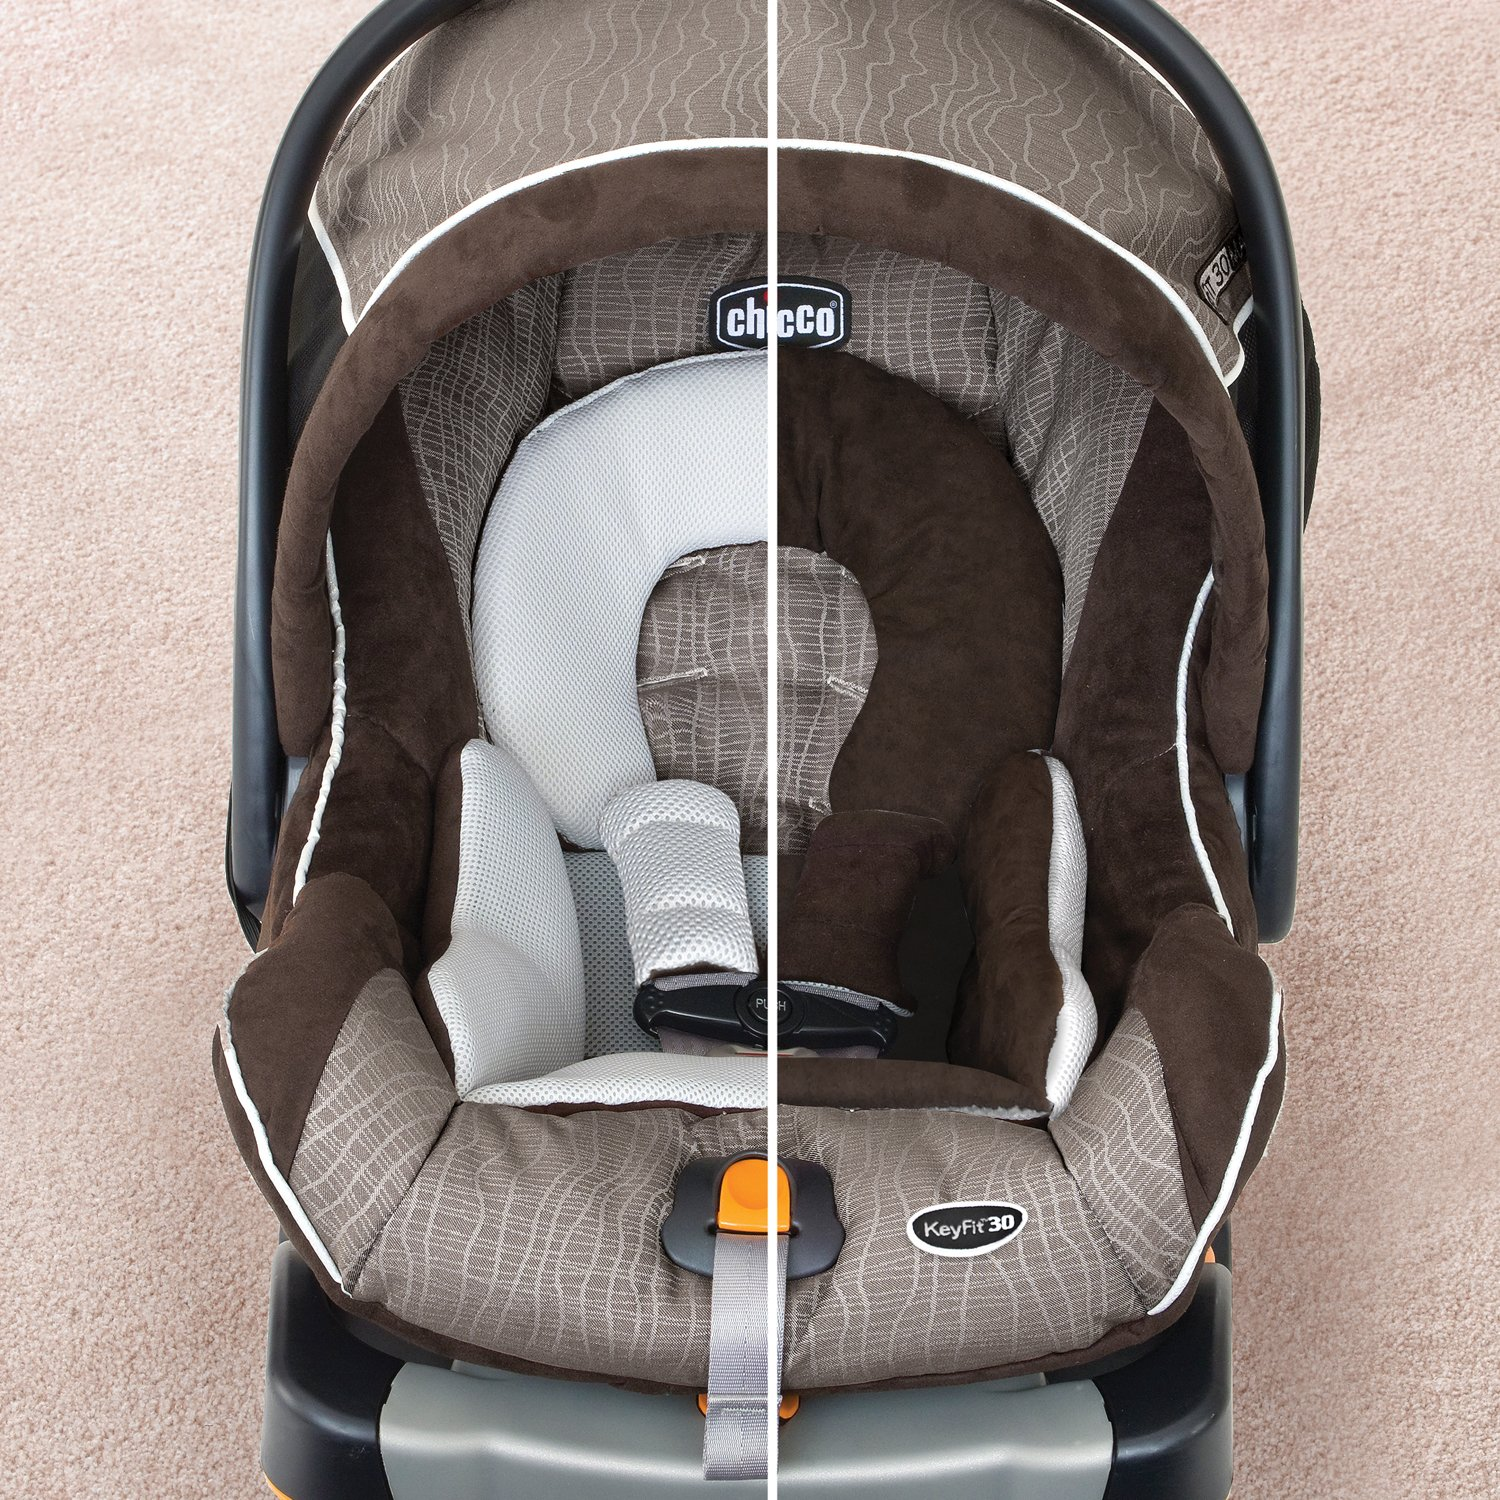 Amazon.com : Chicco Keyfit 30 Magic Infant Car Seat, Black/Grey : Baby